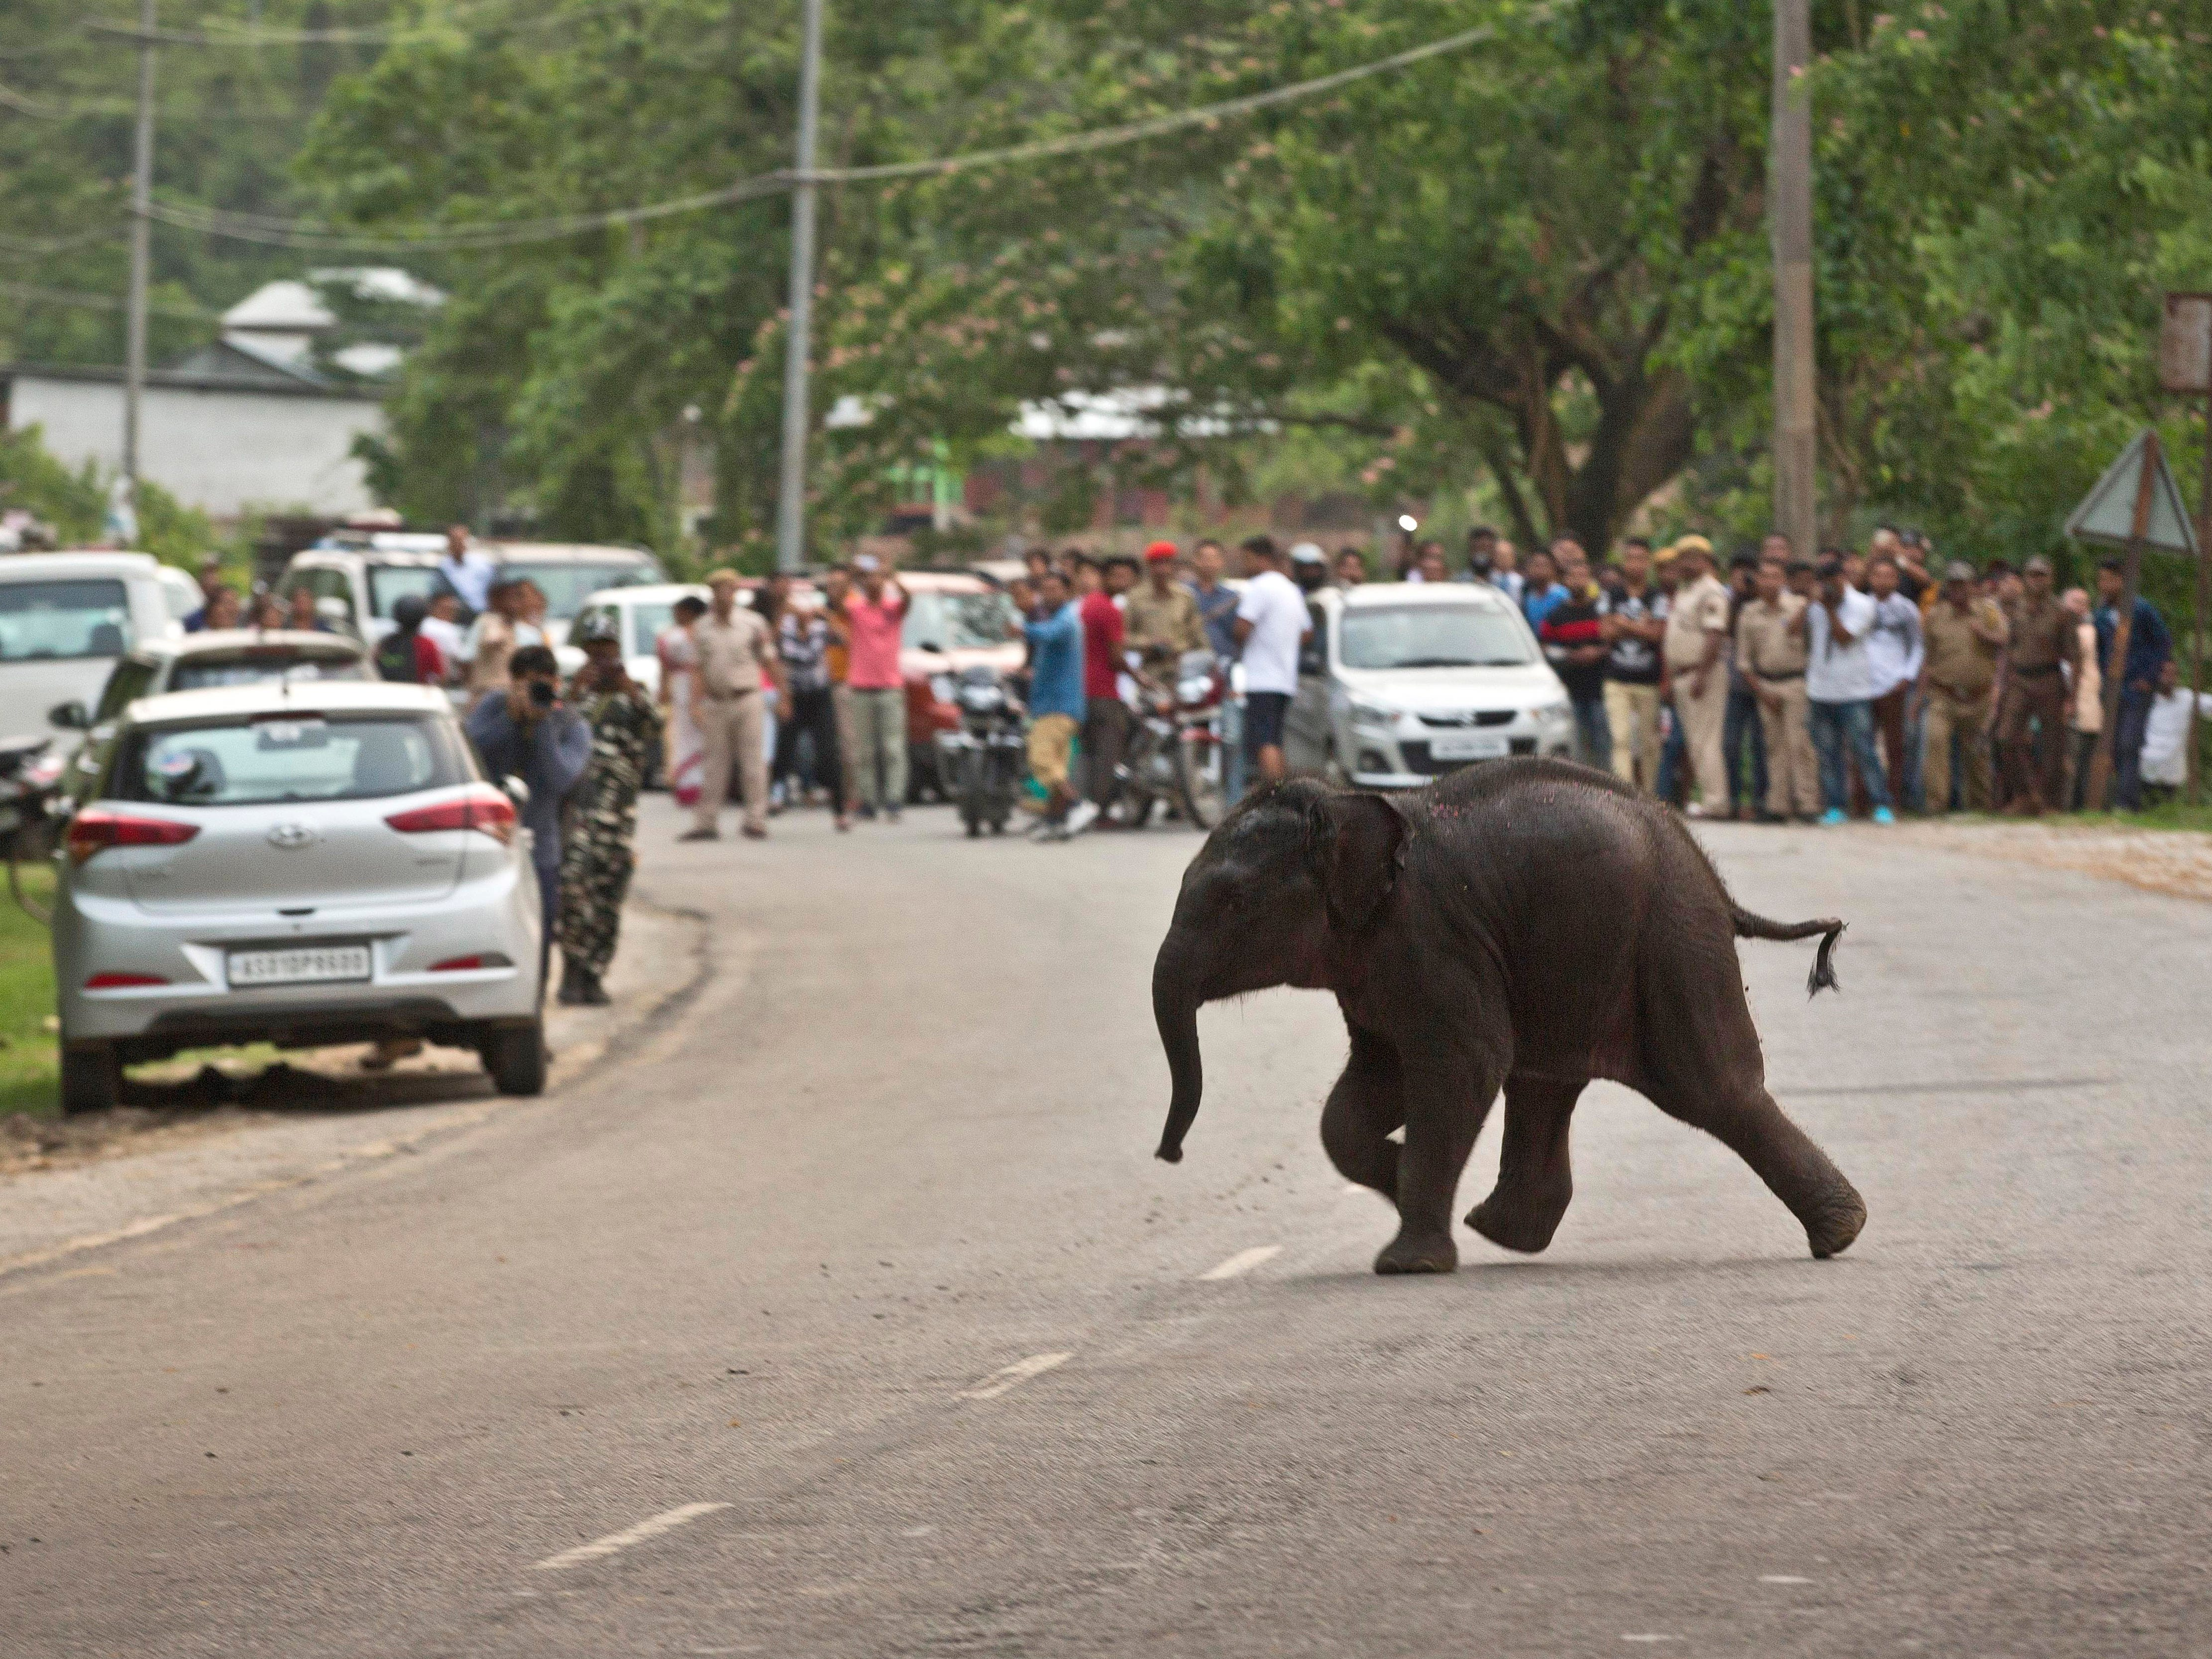 A baby wild elephant crosses a road to return to the forest after being rescued at Deepor Beel wildlife sanctuary in Gauhati, India, Friday, May 10, 2019. The elephant had gotten stuck in the waters of Deepor Beel after it was separated from a herd of wild elephant that came down in search of food last night.